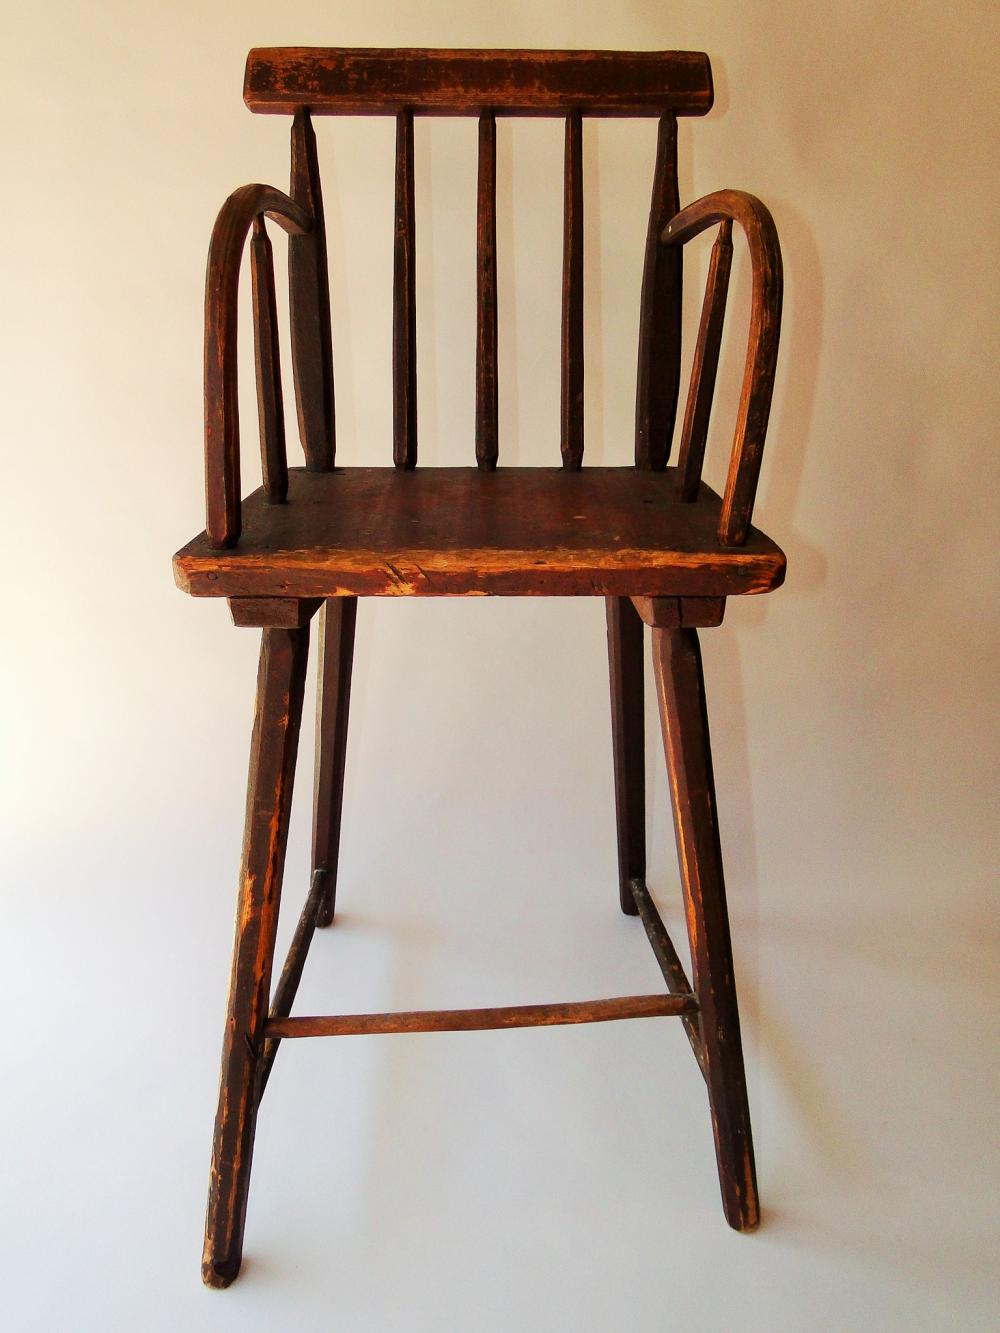 18TH C RED PAINTED HIGH CHAIR